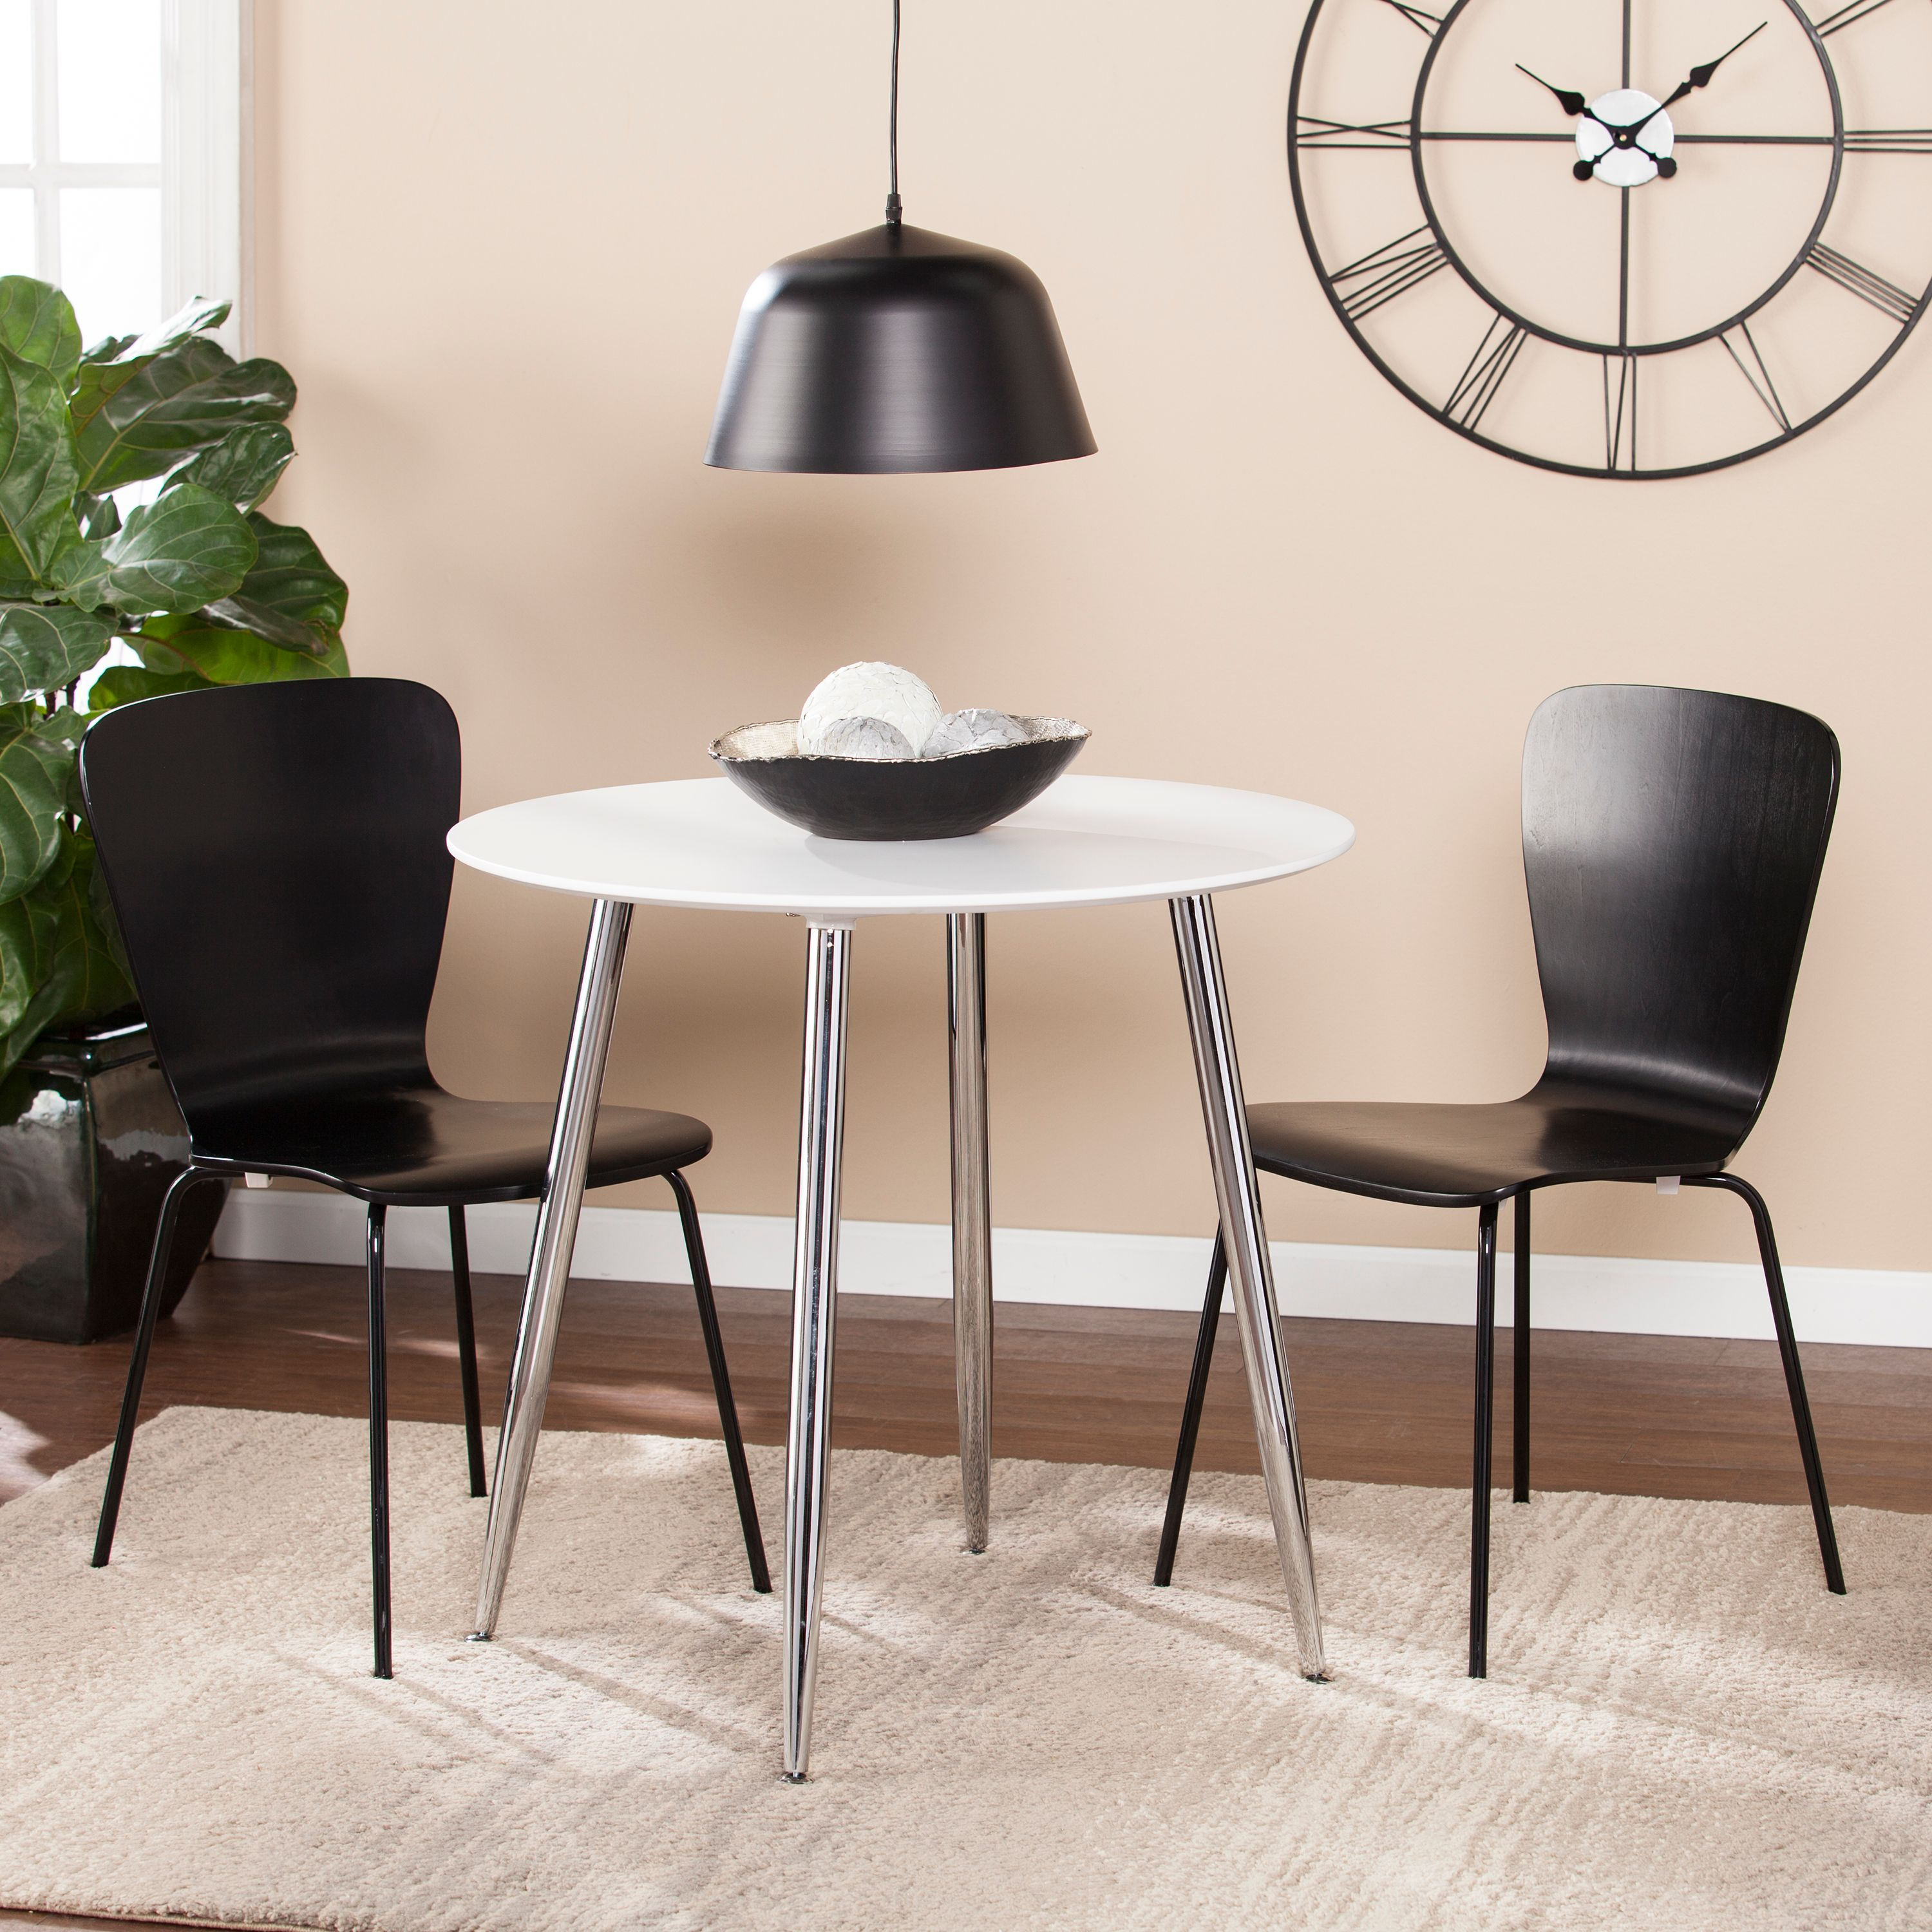 Exceptionnel Southern Enterprises Mafflo Multifunctional Round Dining/Game Table, White